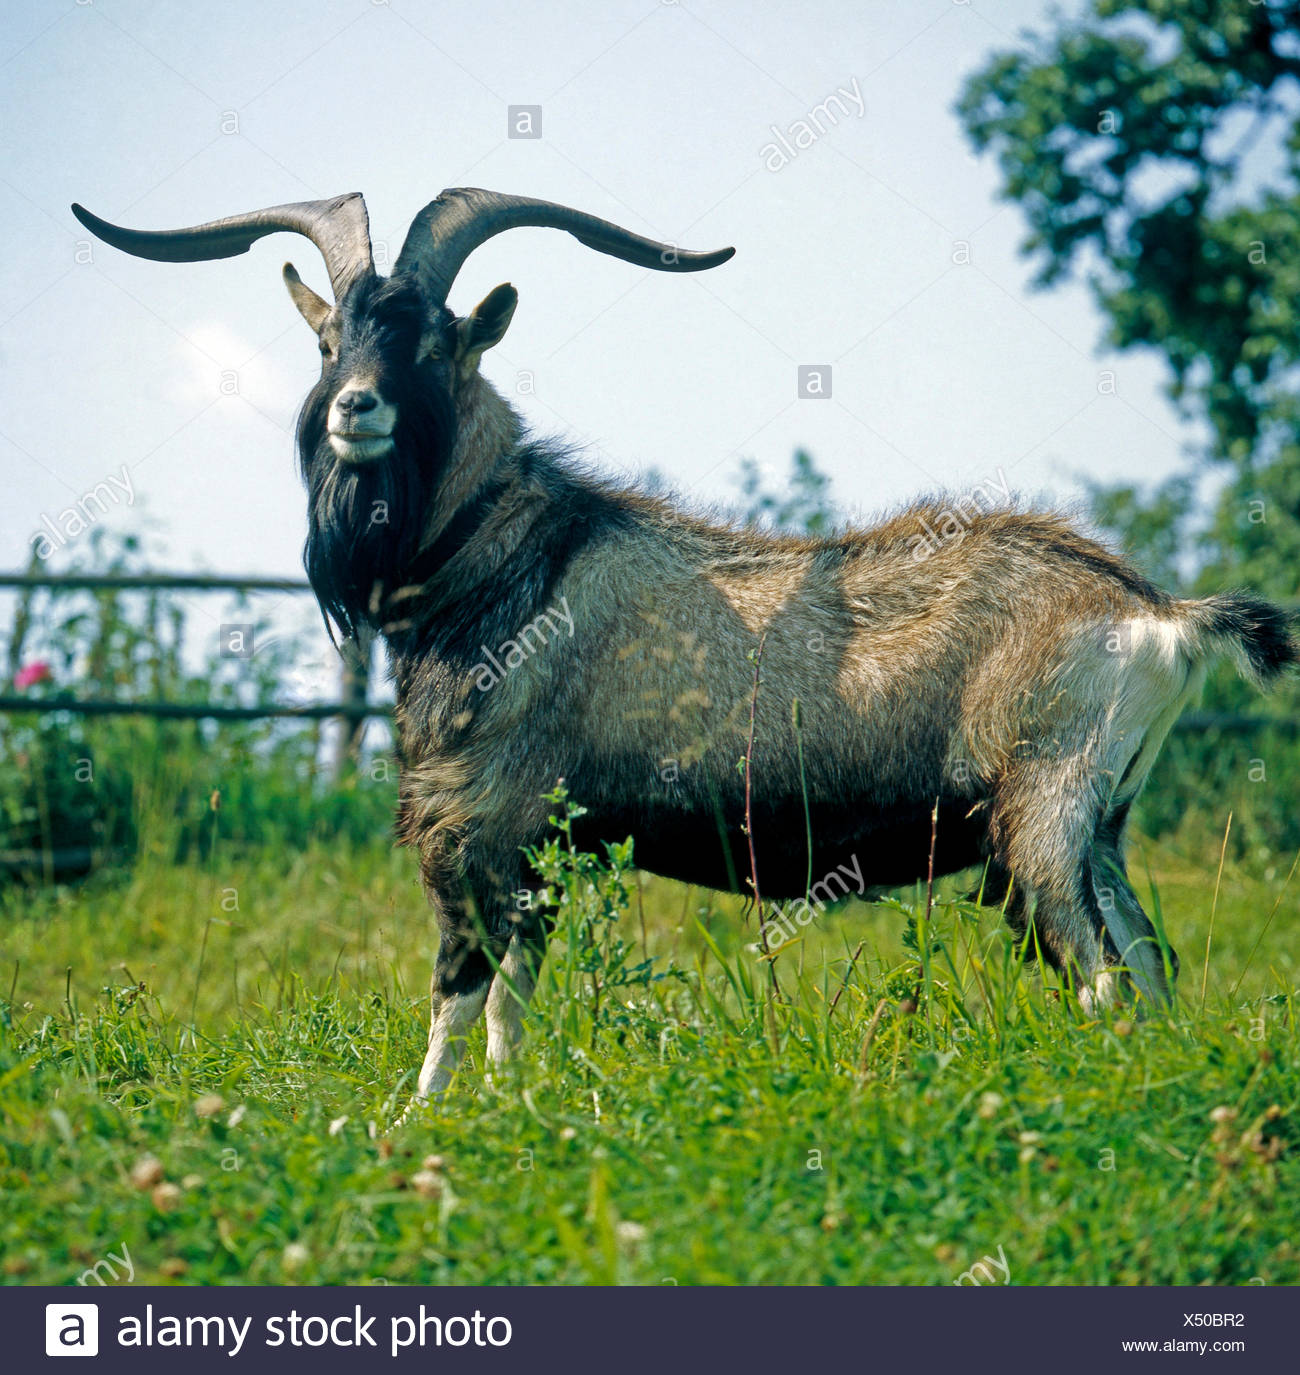 Billy goat of the Thuringian goat, an old breed, grazing on a paddock - Stock Image